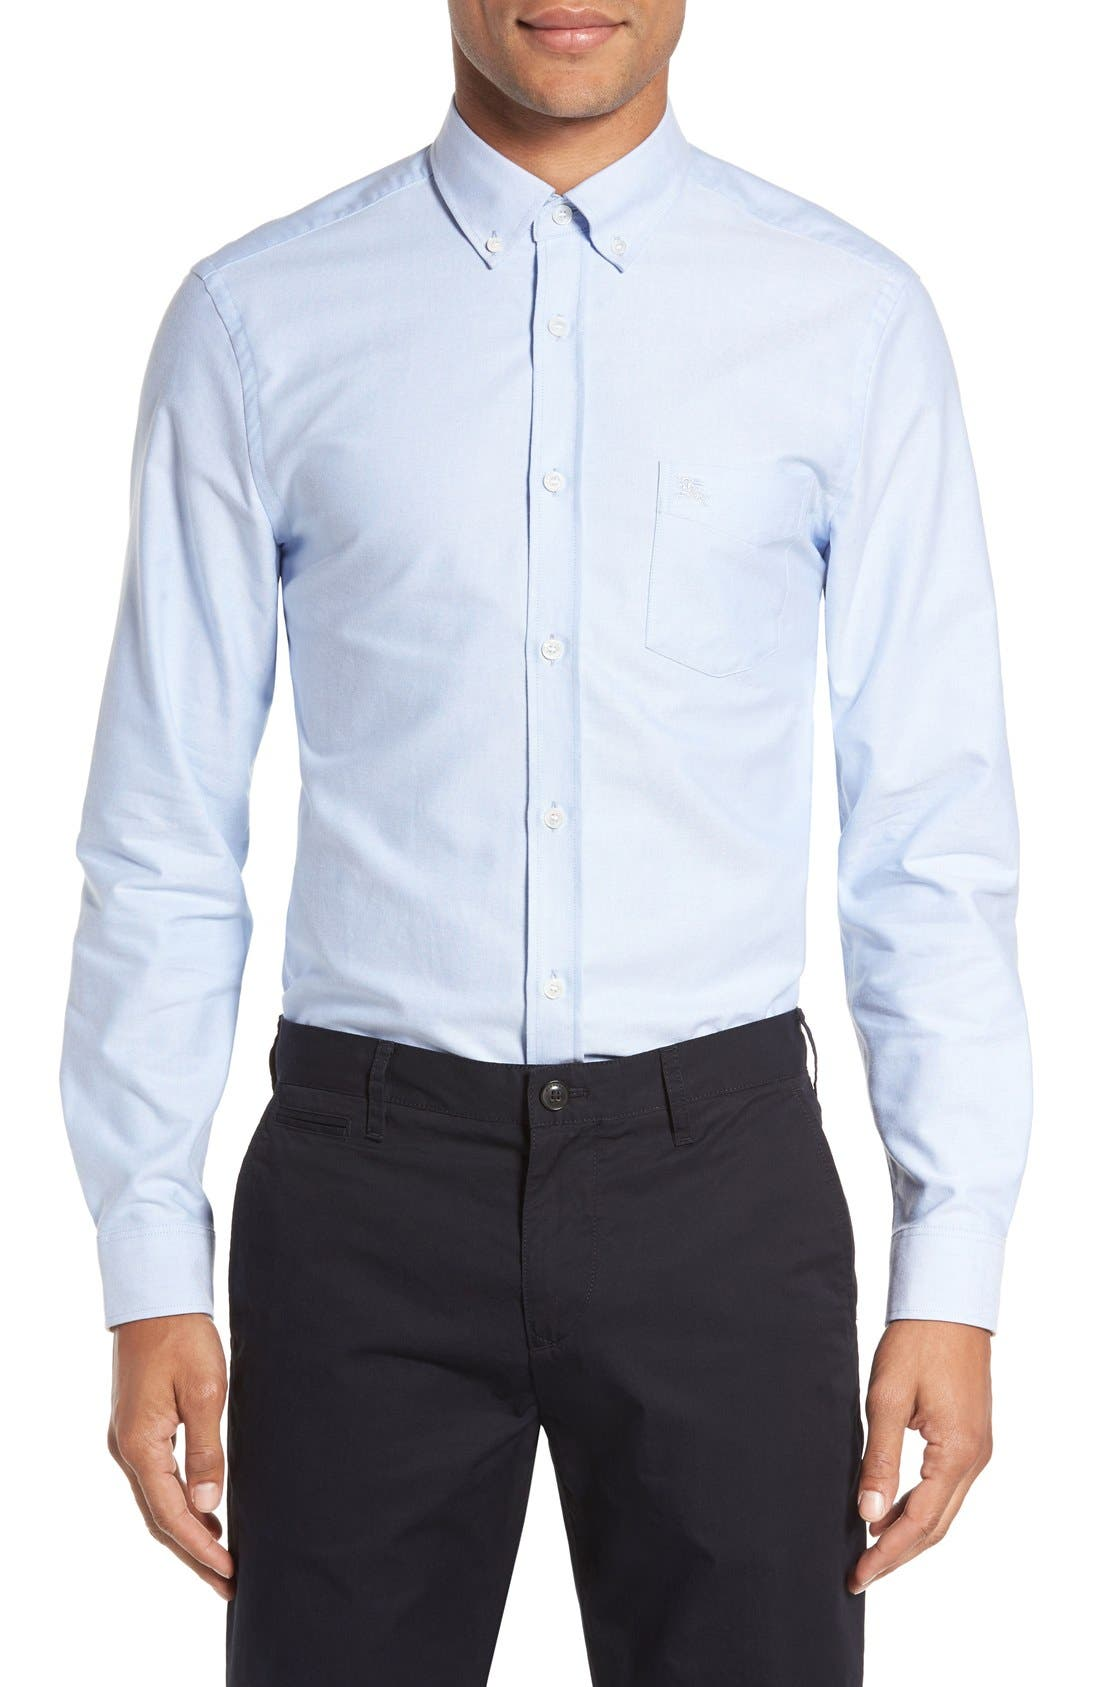 Main Image - Burberry 'Reagan' Extra Trim Fit Solid Cotton Sport Shirt